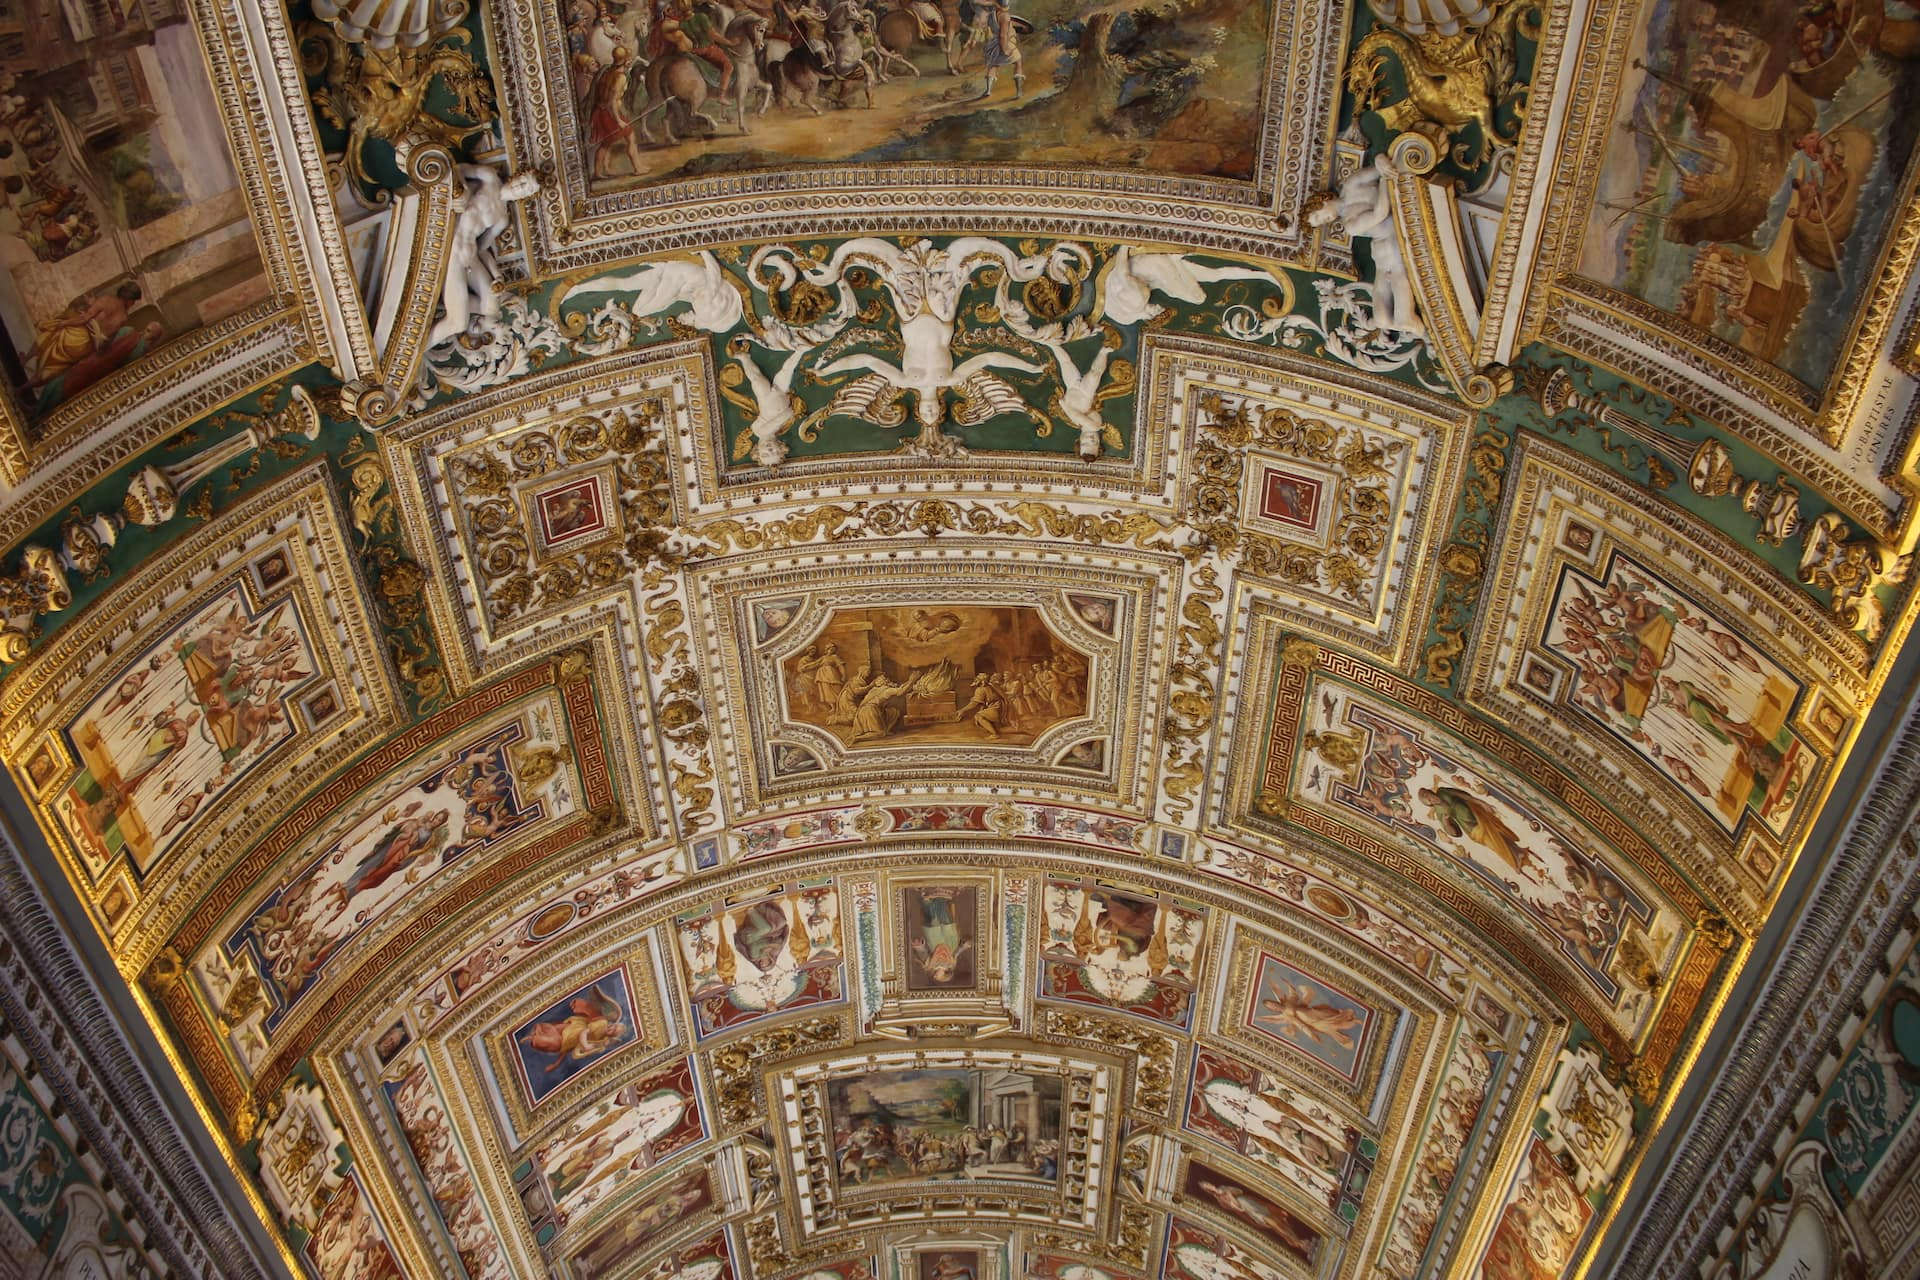 Tips on visiting the Vatican museums